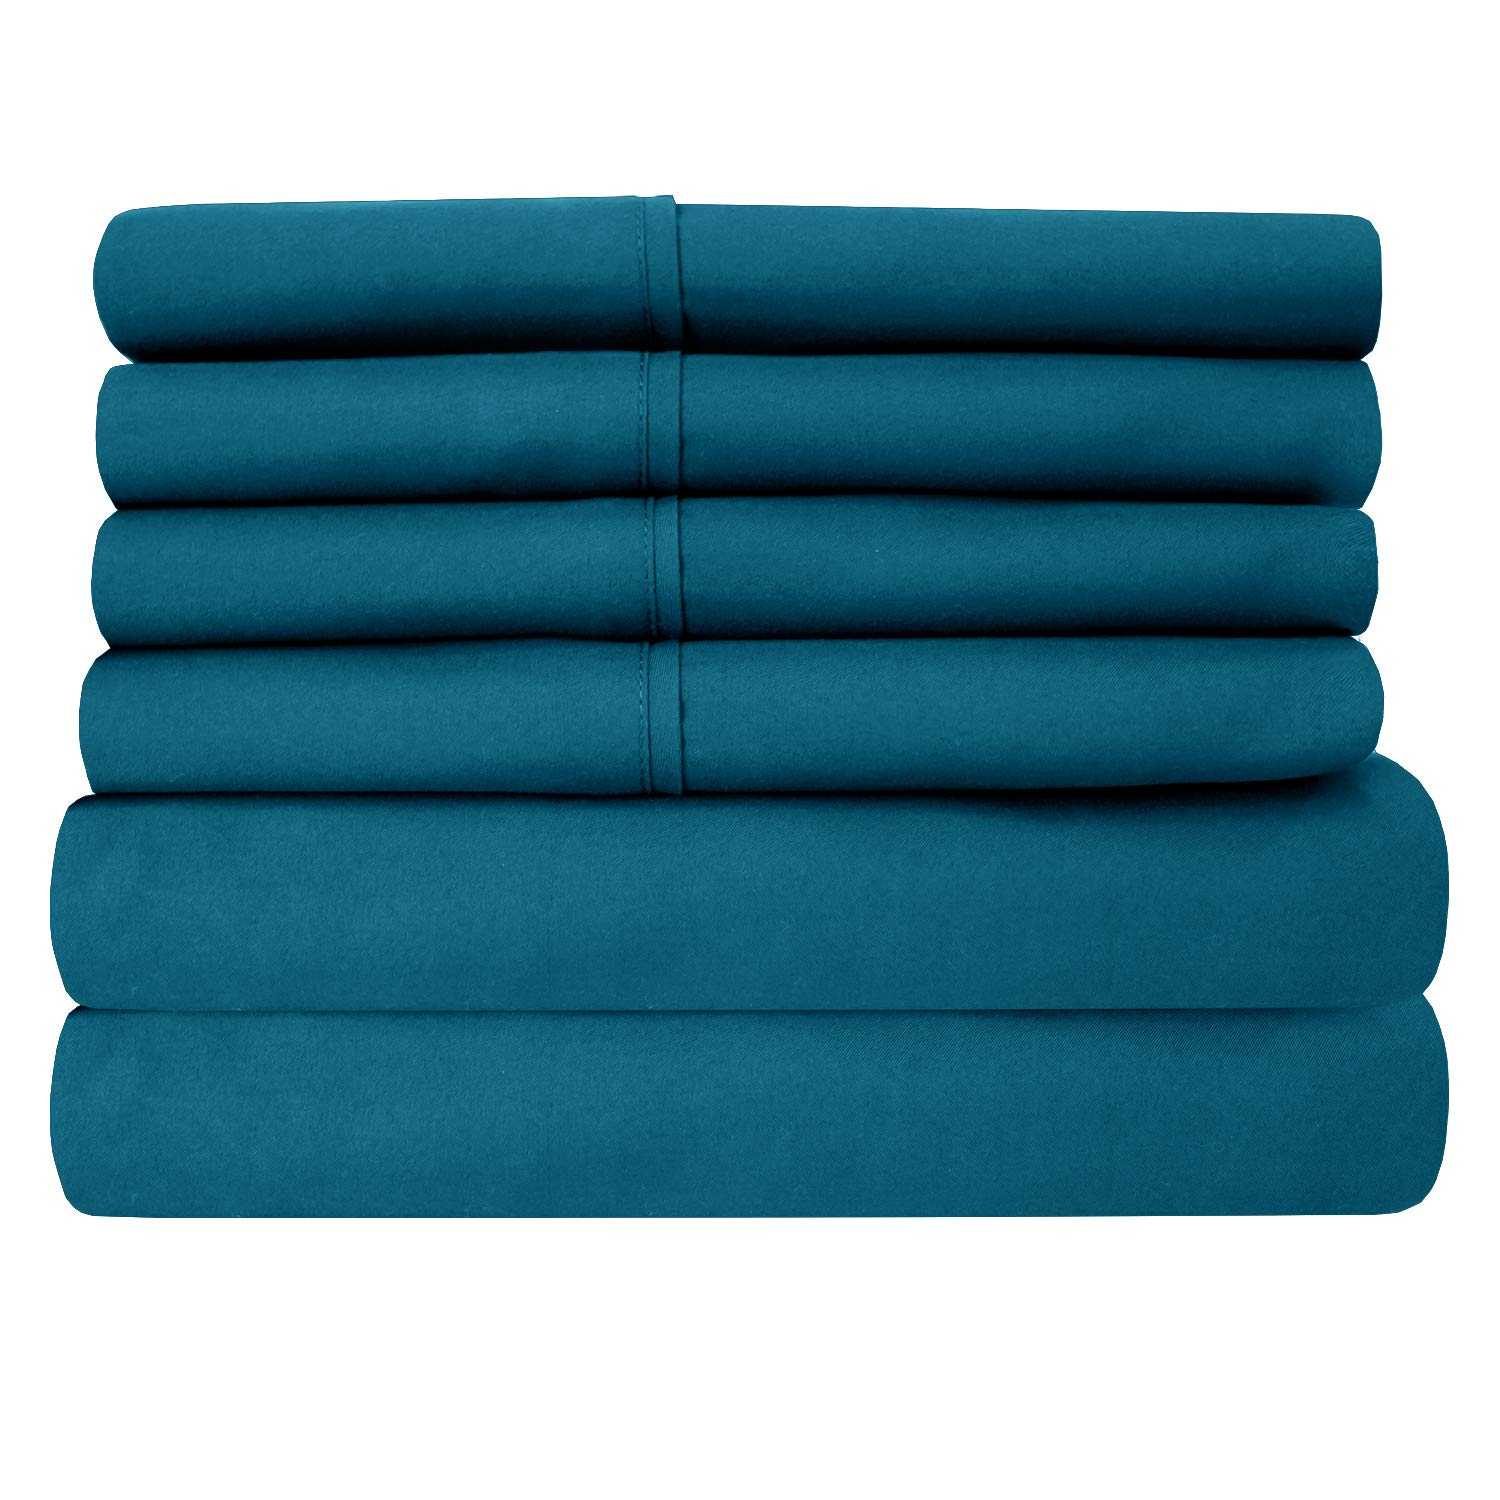 Cal King Size Bed Sheets - 6 Piece 1500 Thread Count Fine Brushed Microfiber Deep Pocket California King Sheet Set Bedding - 2 Extra Pillow Cases, Great Value, California King, Teal